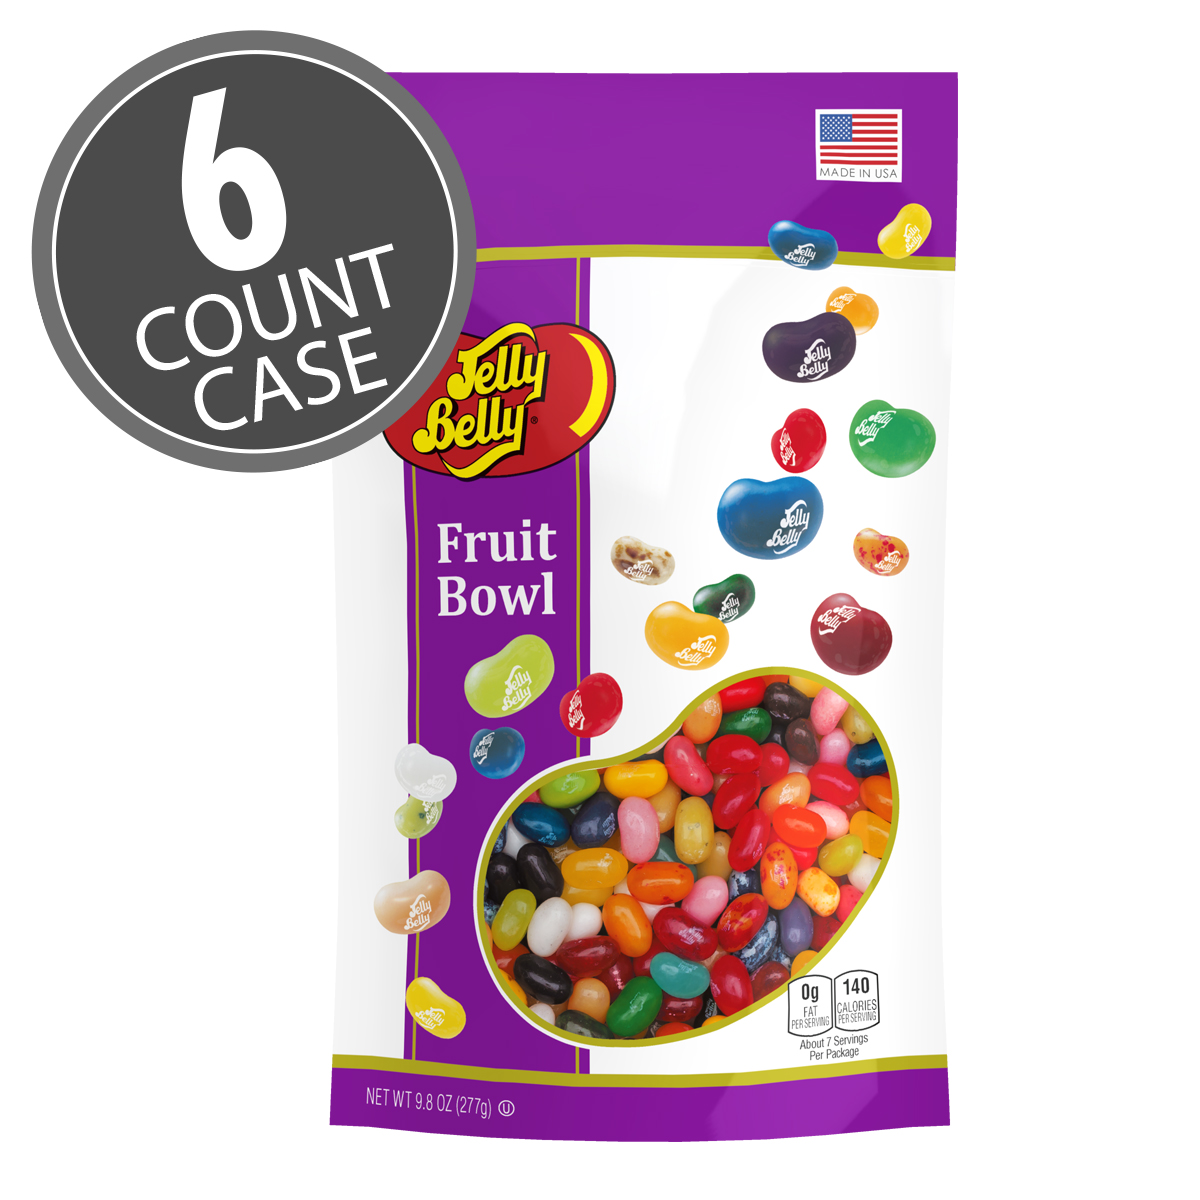 Fruit Bowl For Counter Fruit Bowl Mix Jelly Beans 9 8 Oz Pouch Bag 6 Count Case